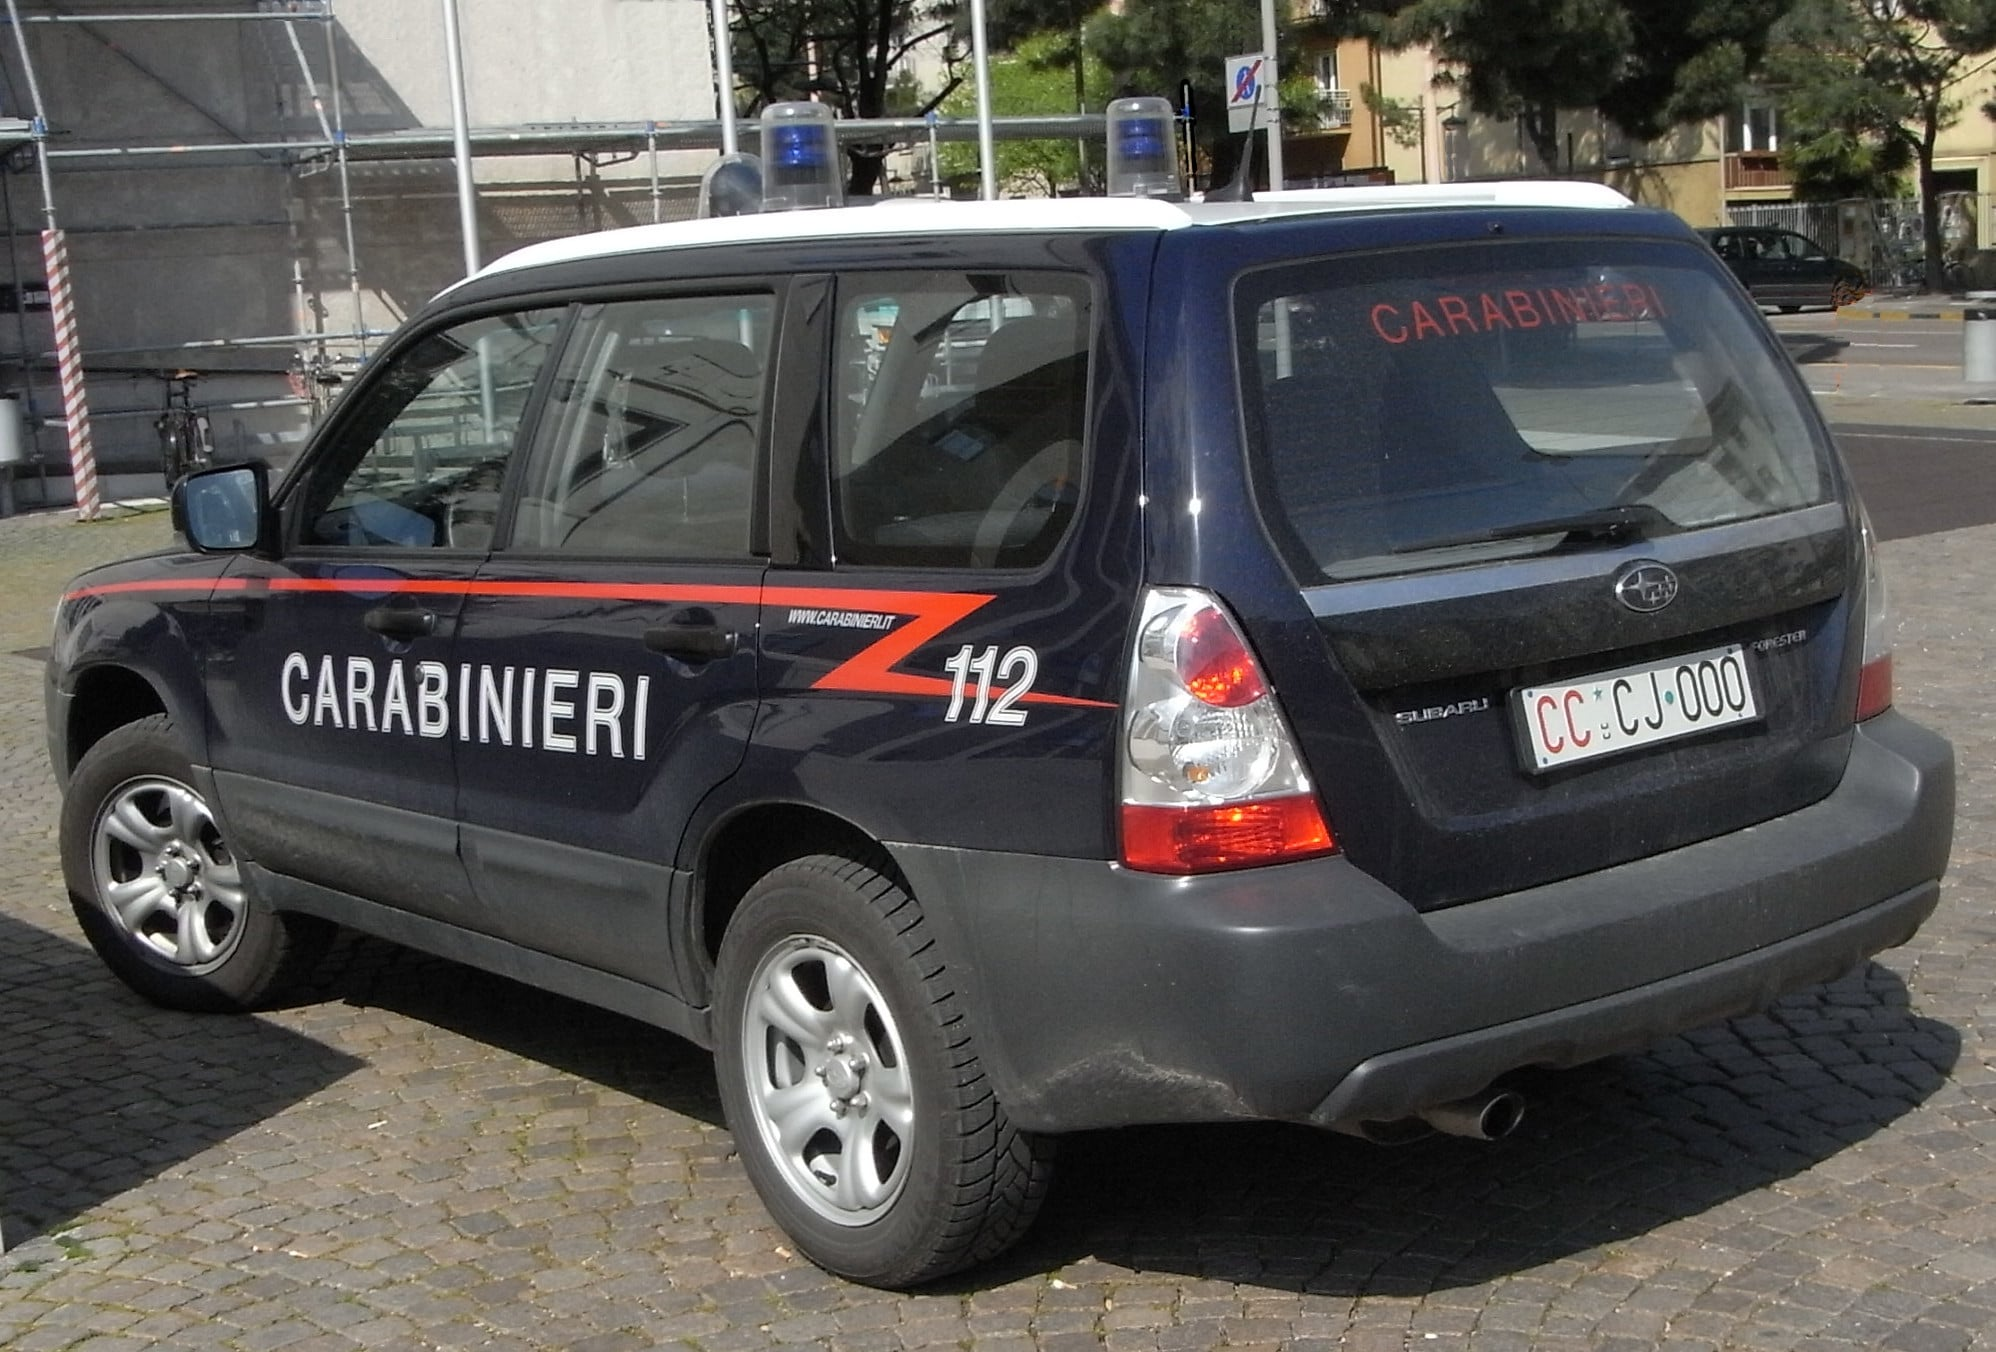 Photo of PISTOIA – Carabinieri sgominano banda di ladri